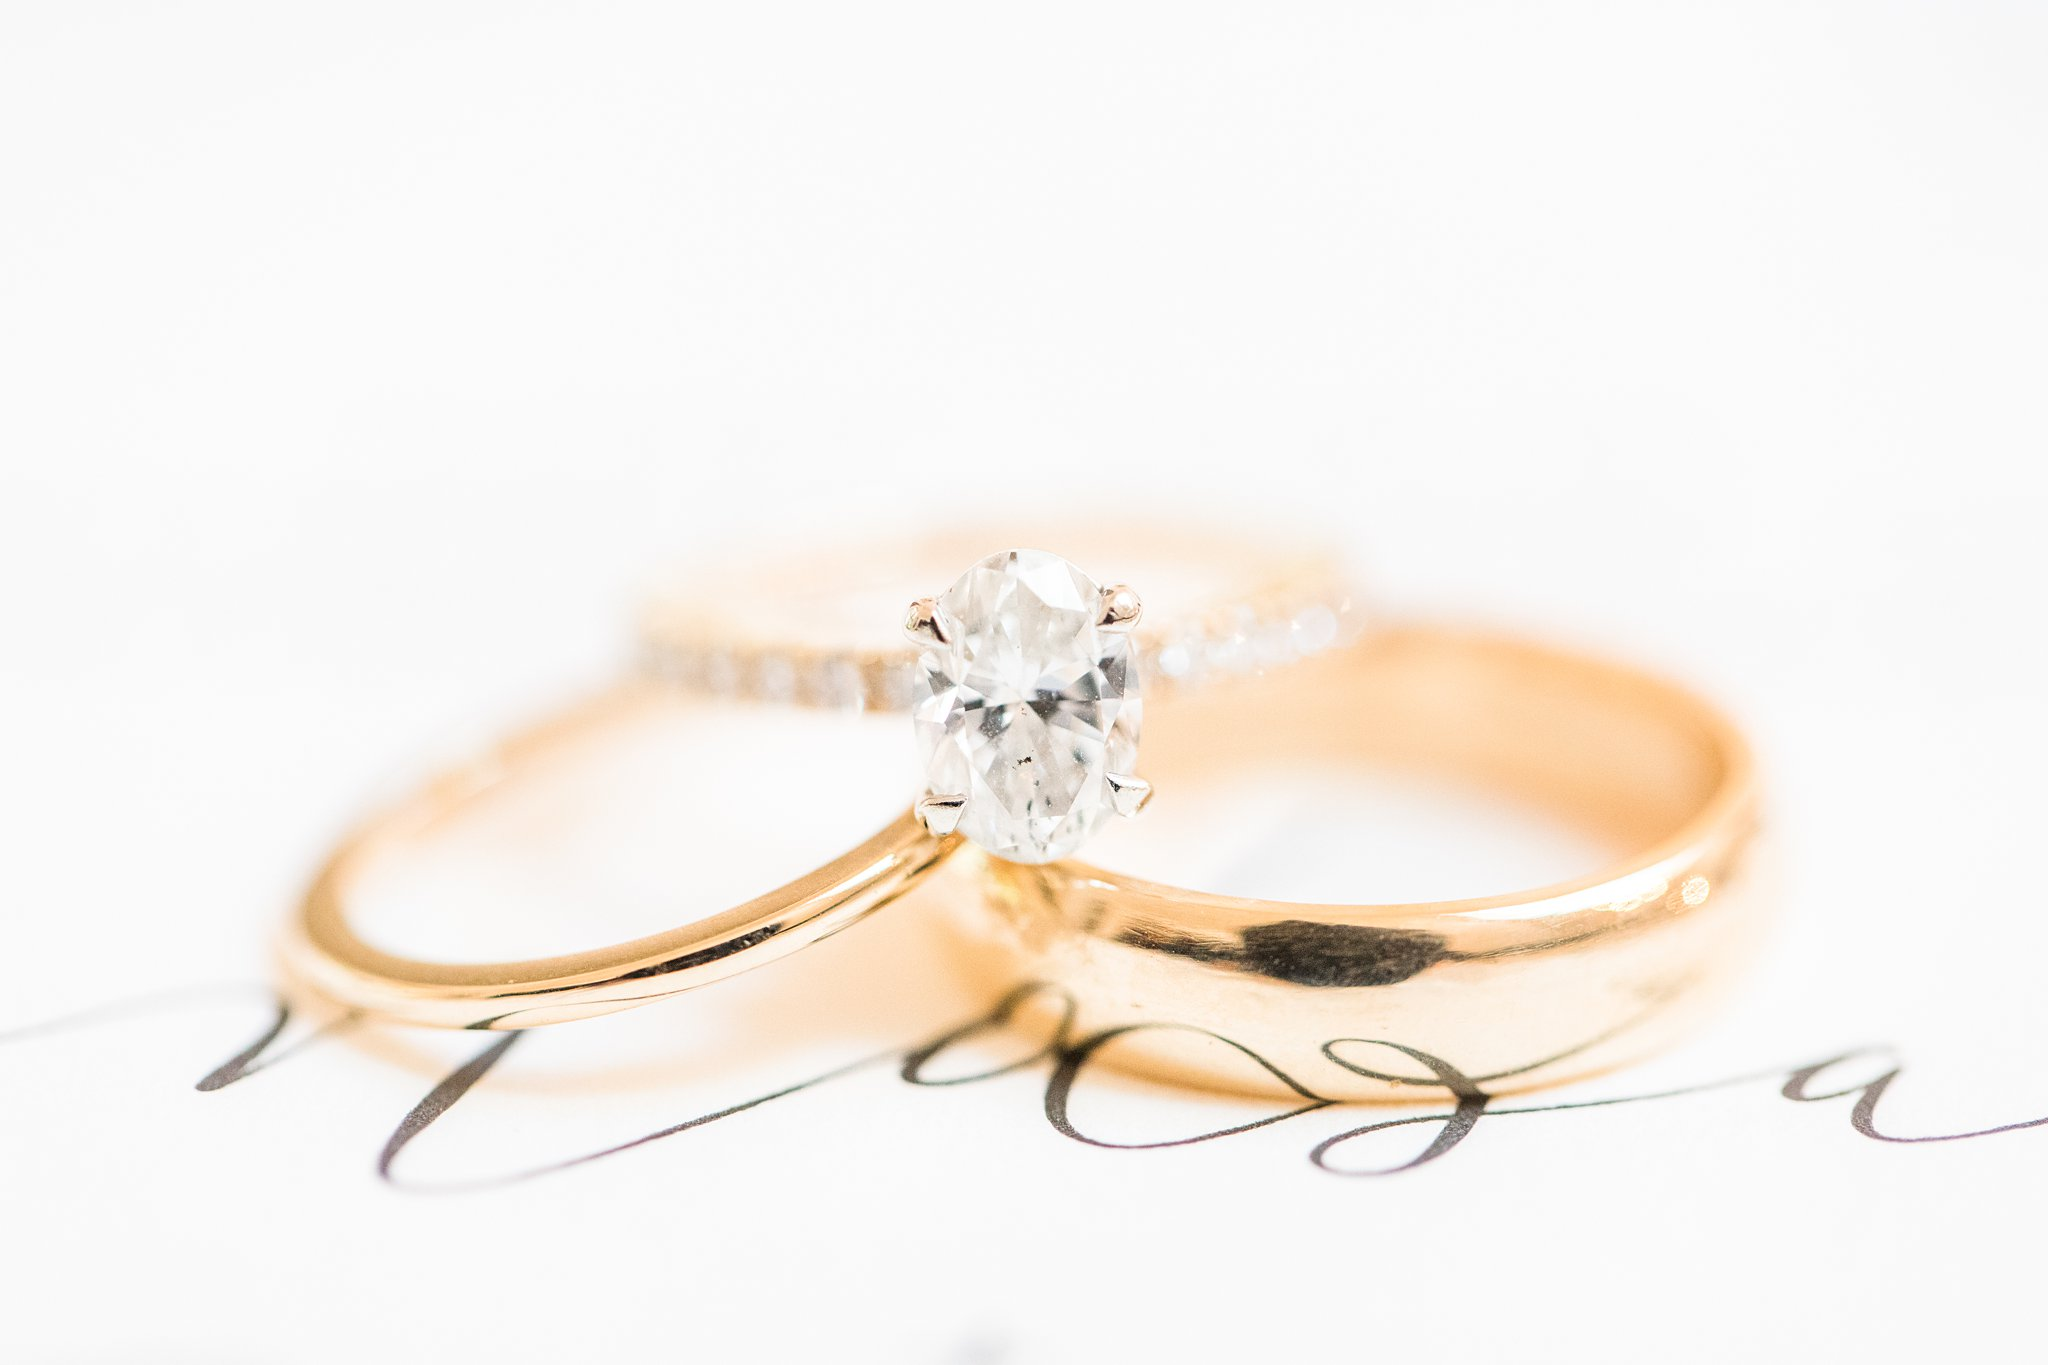 Goldform wedding bands, oval diamond ring, Opinicon Wedding Photos by Amy Pinder Photography